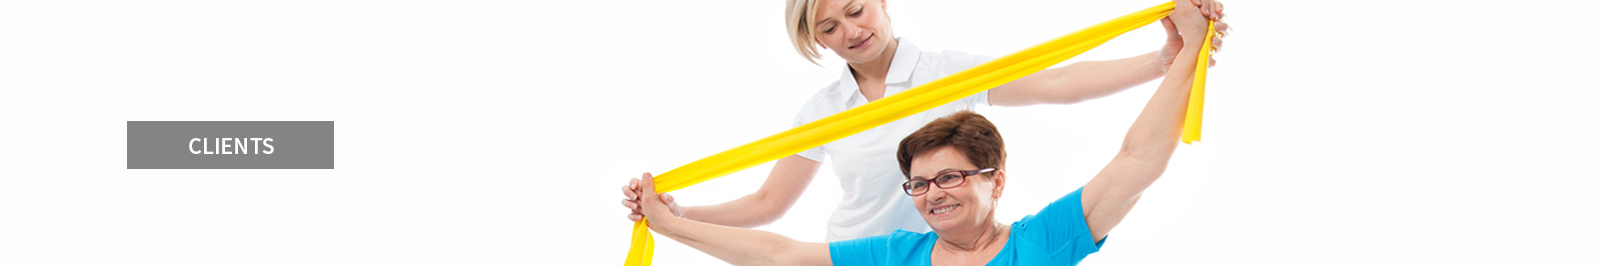 Reach Care Rehabilitation - in home physical therapy